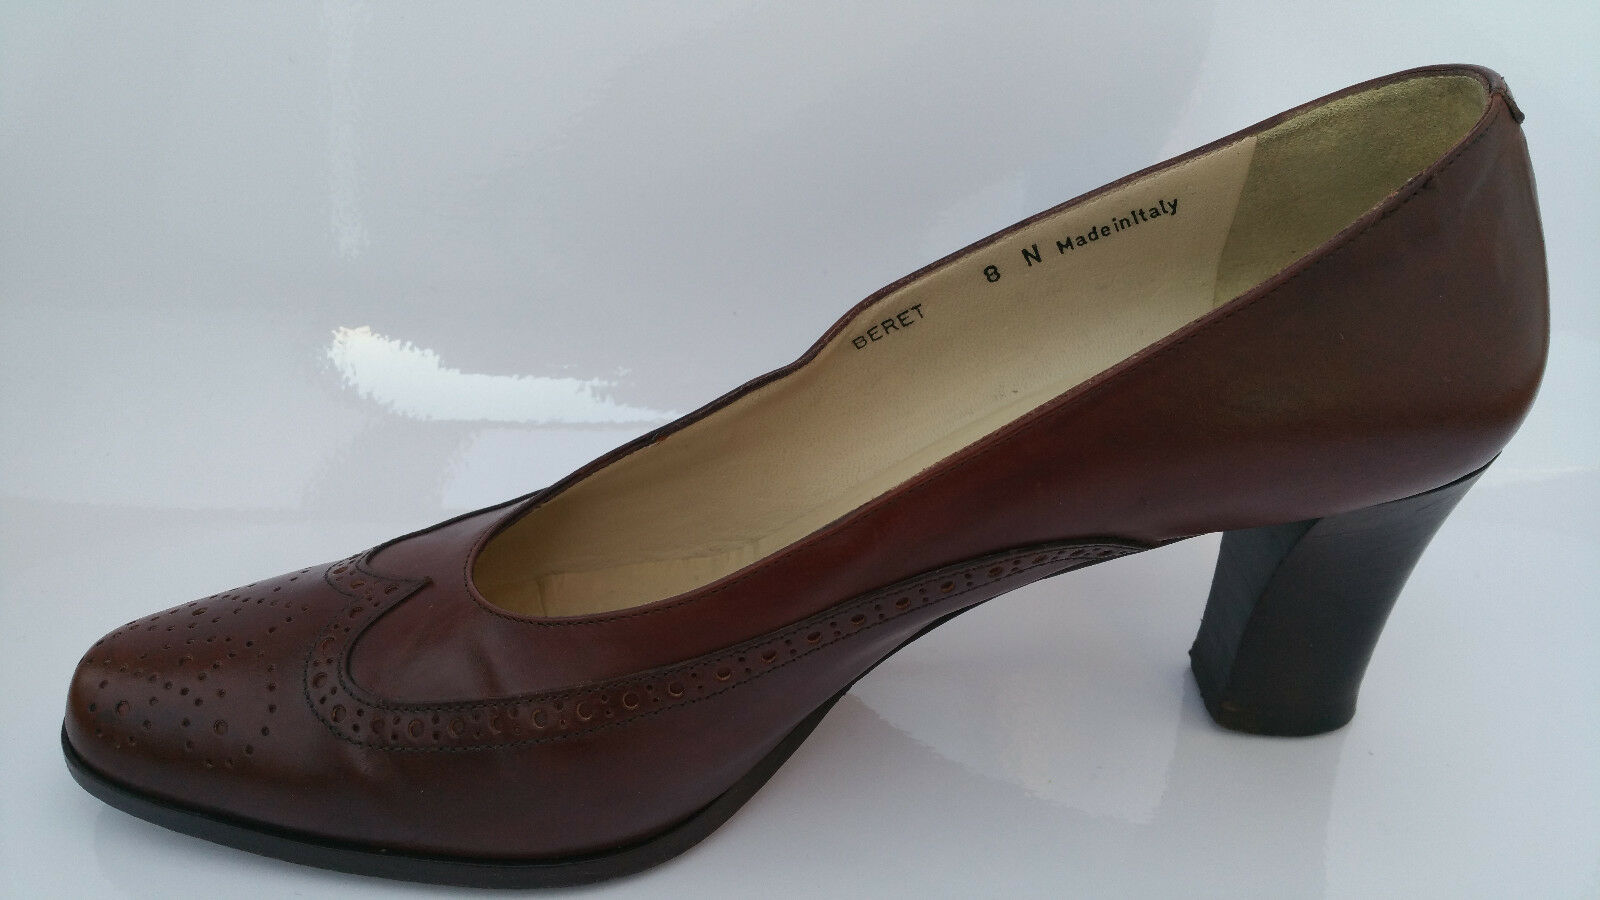 BALLY BERET damen 8 N schuhe braun Leather Secretary Pumps Brogue Wingtip schuhe N Heels 633910